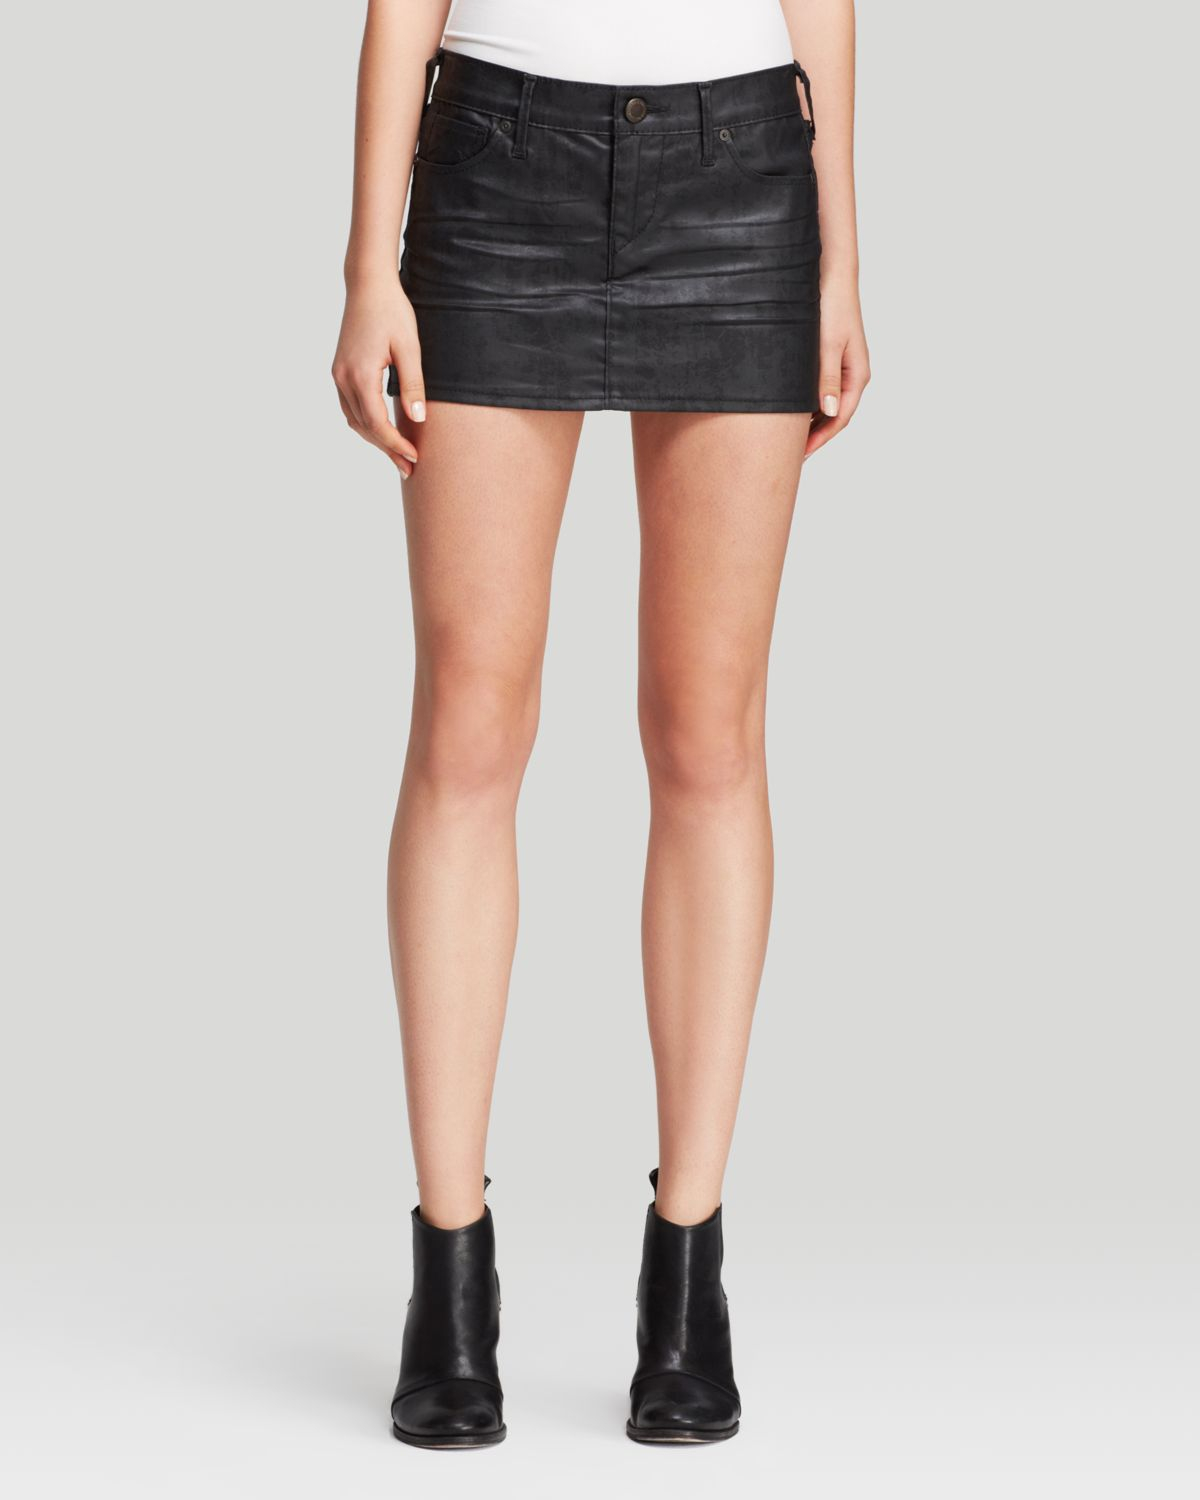 6cd9dc0d513d8 true-religion--mini-skirt-mia-high-thigh-coated-product-1-23355375-0-041297671-normal.jpeg